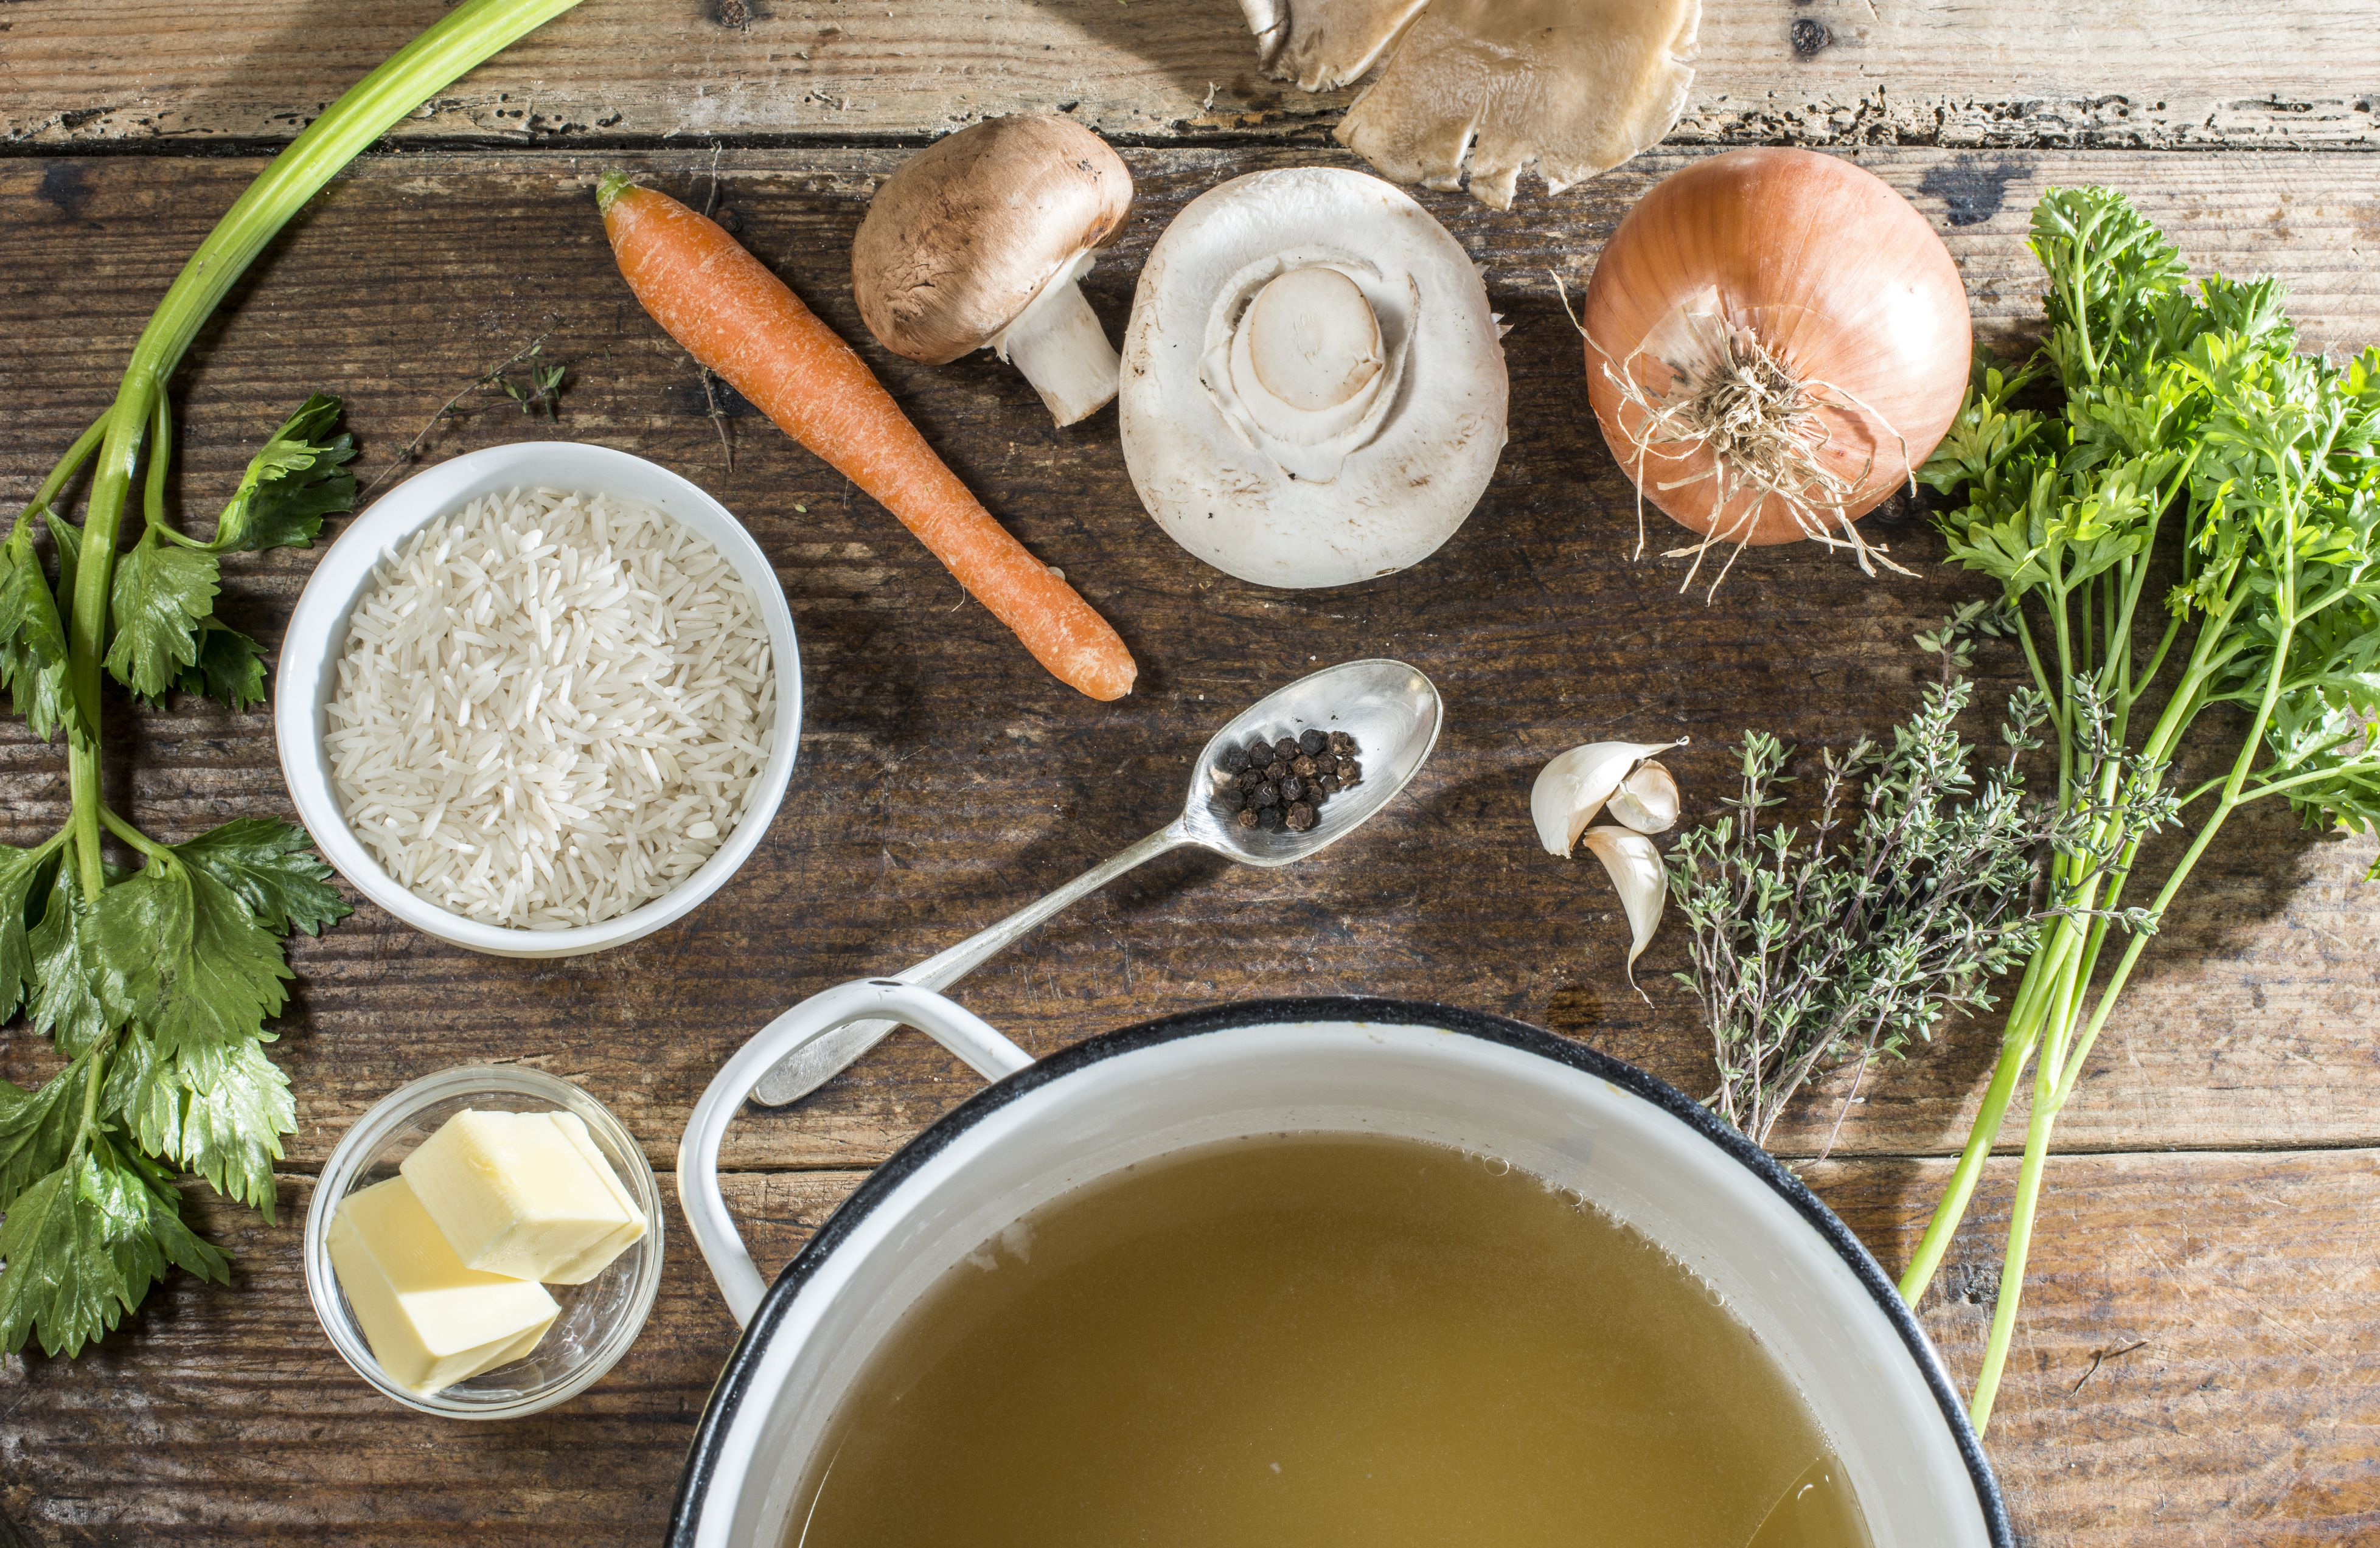 Ingredients for Bulgarian soup with rice, mushrooms and carrots